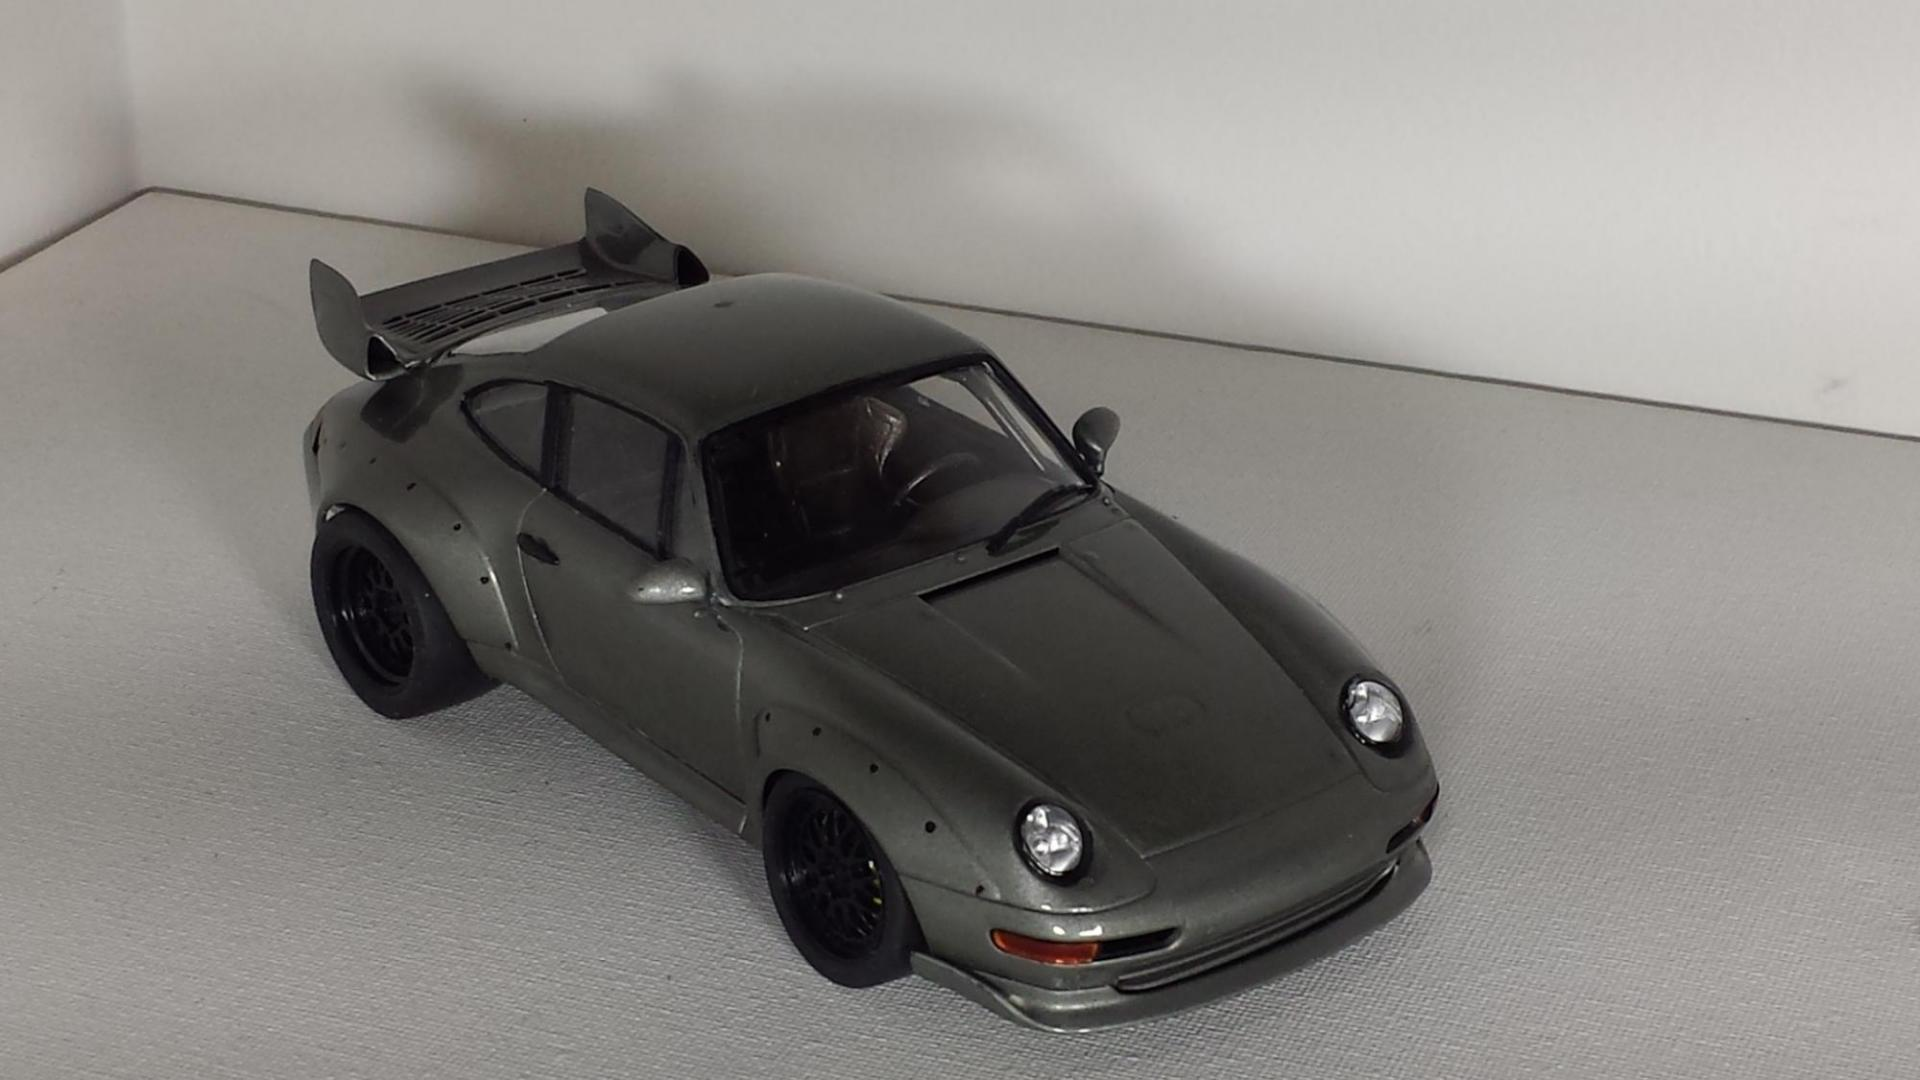 tamiya porsche 911 gt2 under glass model cars magazine forum. Black Bedroom Furniture Sets. Home Design Ideas